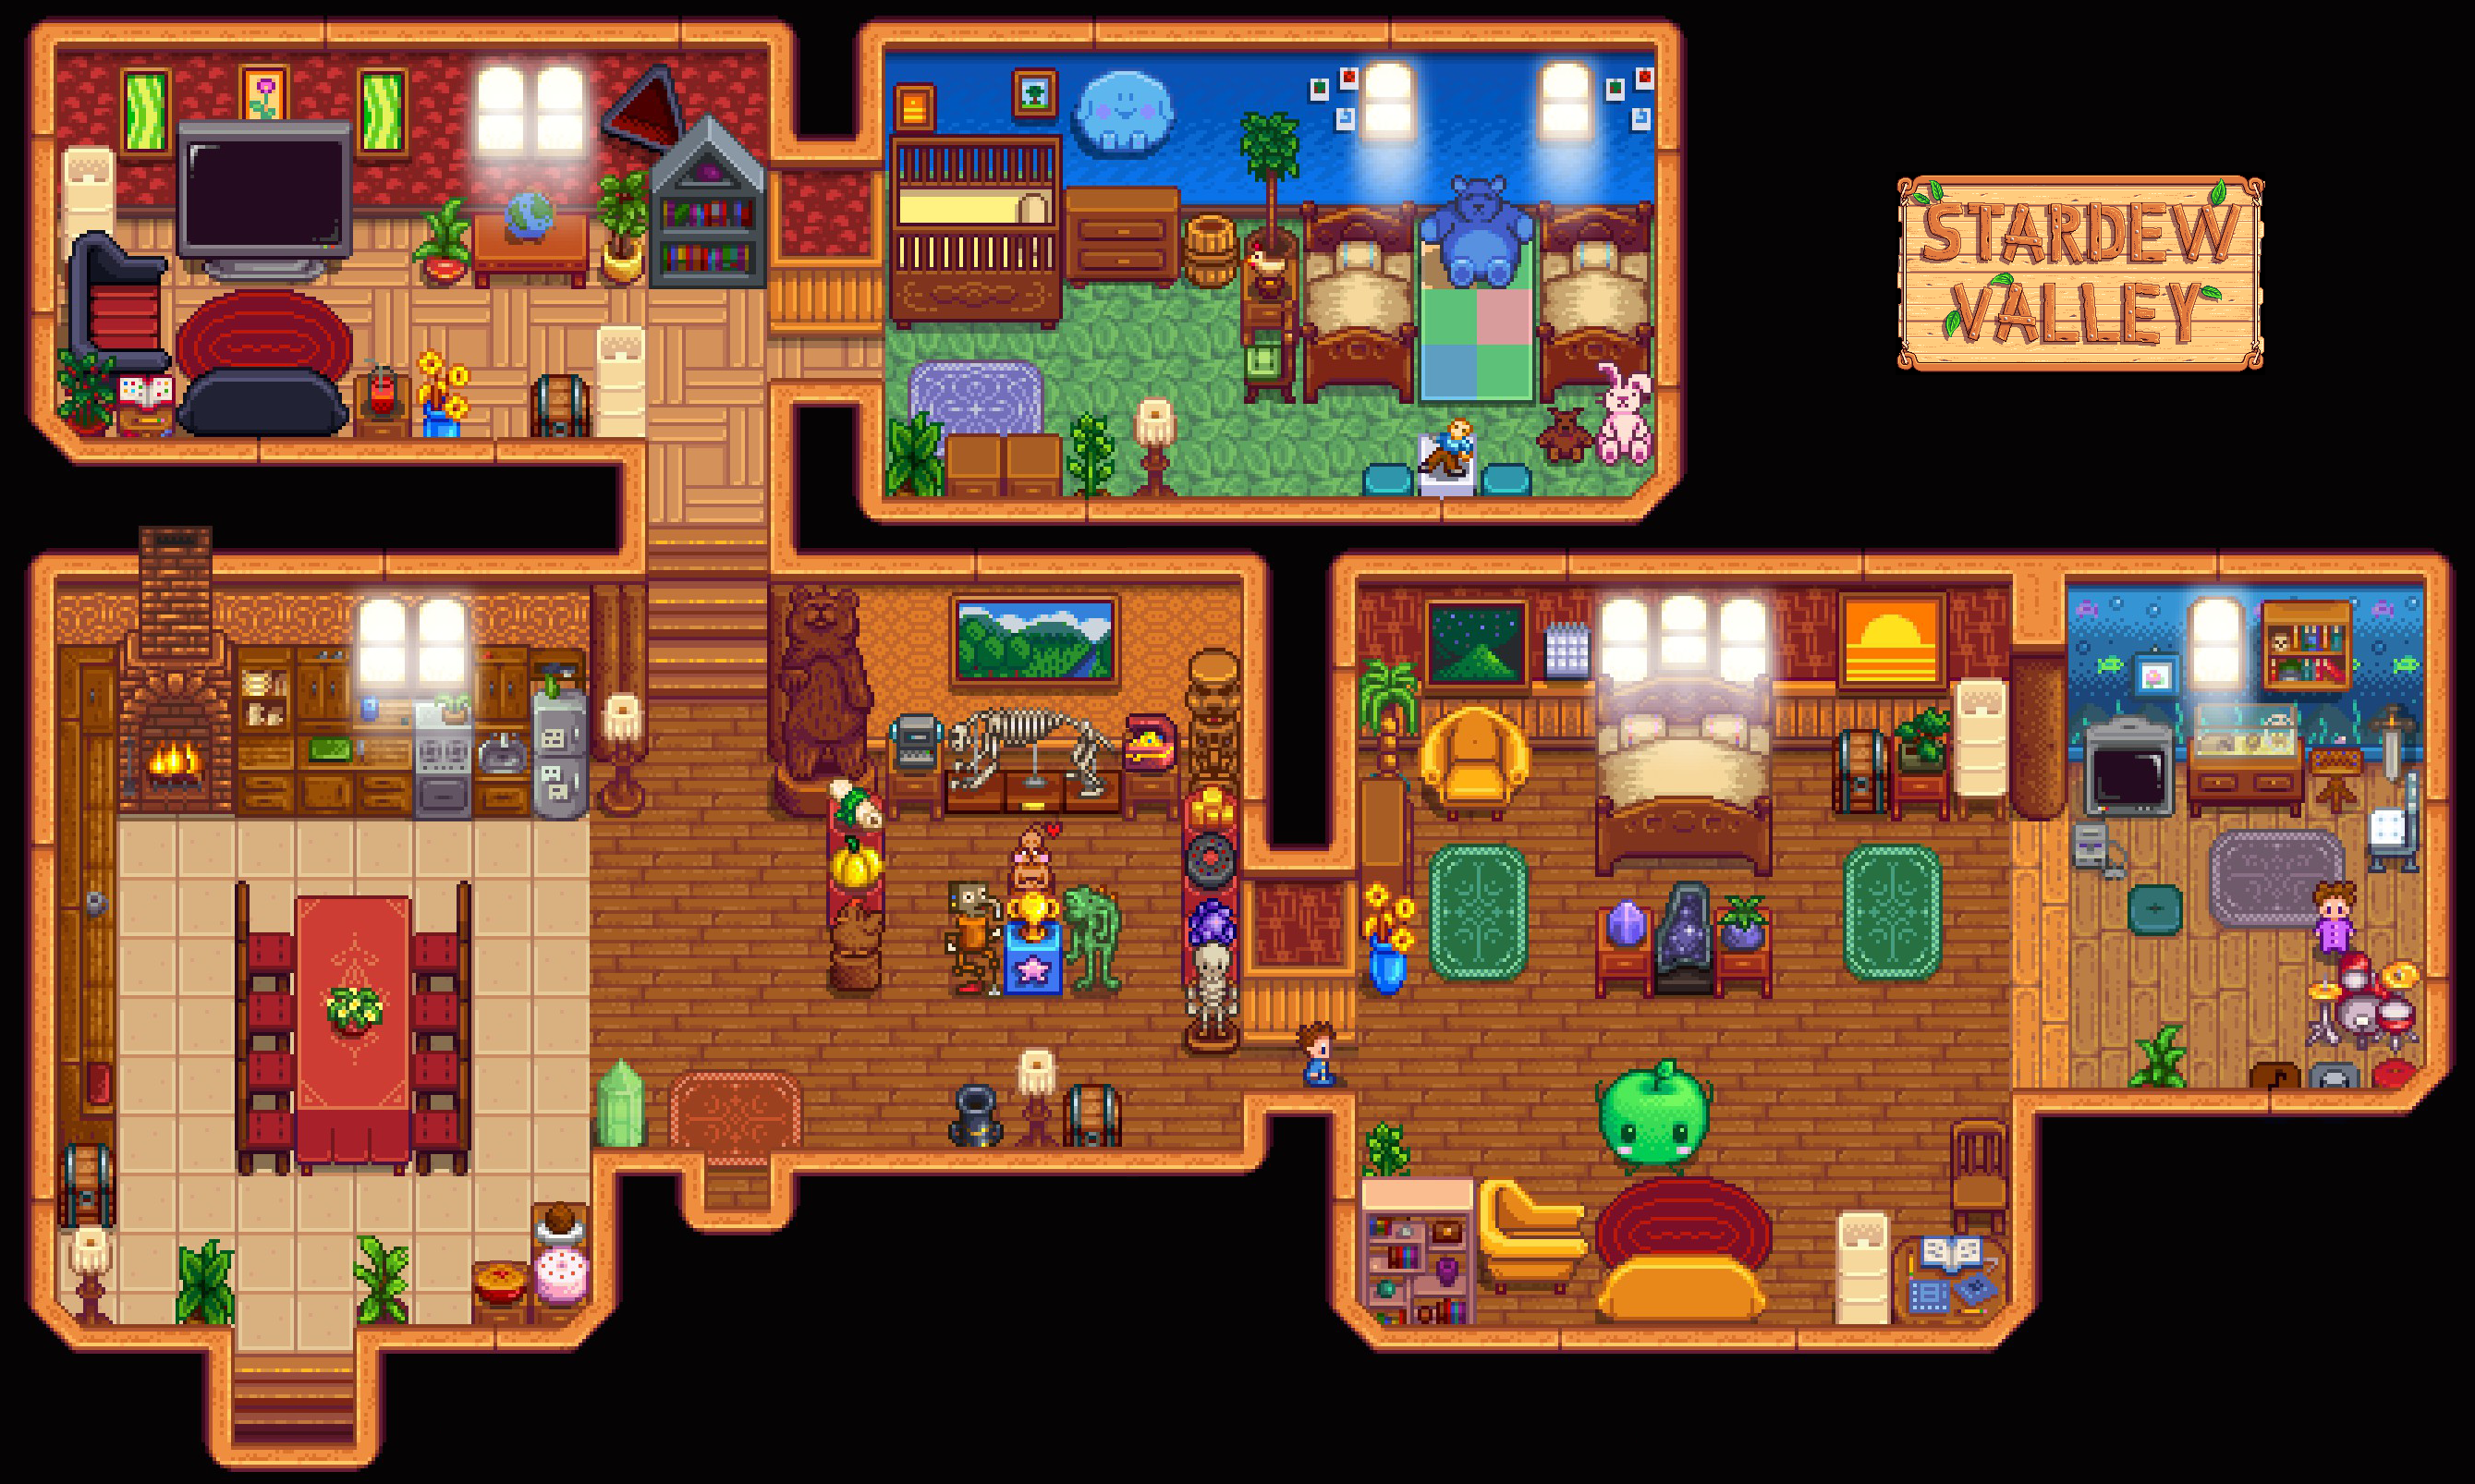 Steam Community Stardew Valley House Bath house hot spring mod replaces the bathhouse with an indoor hot spring. steam community stardew valley house